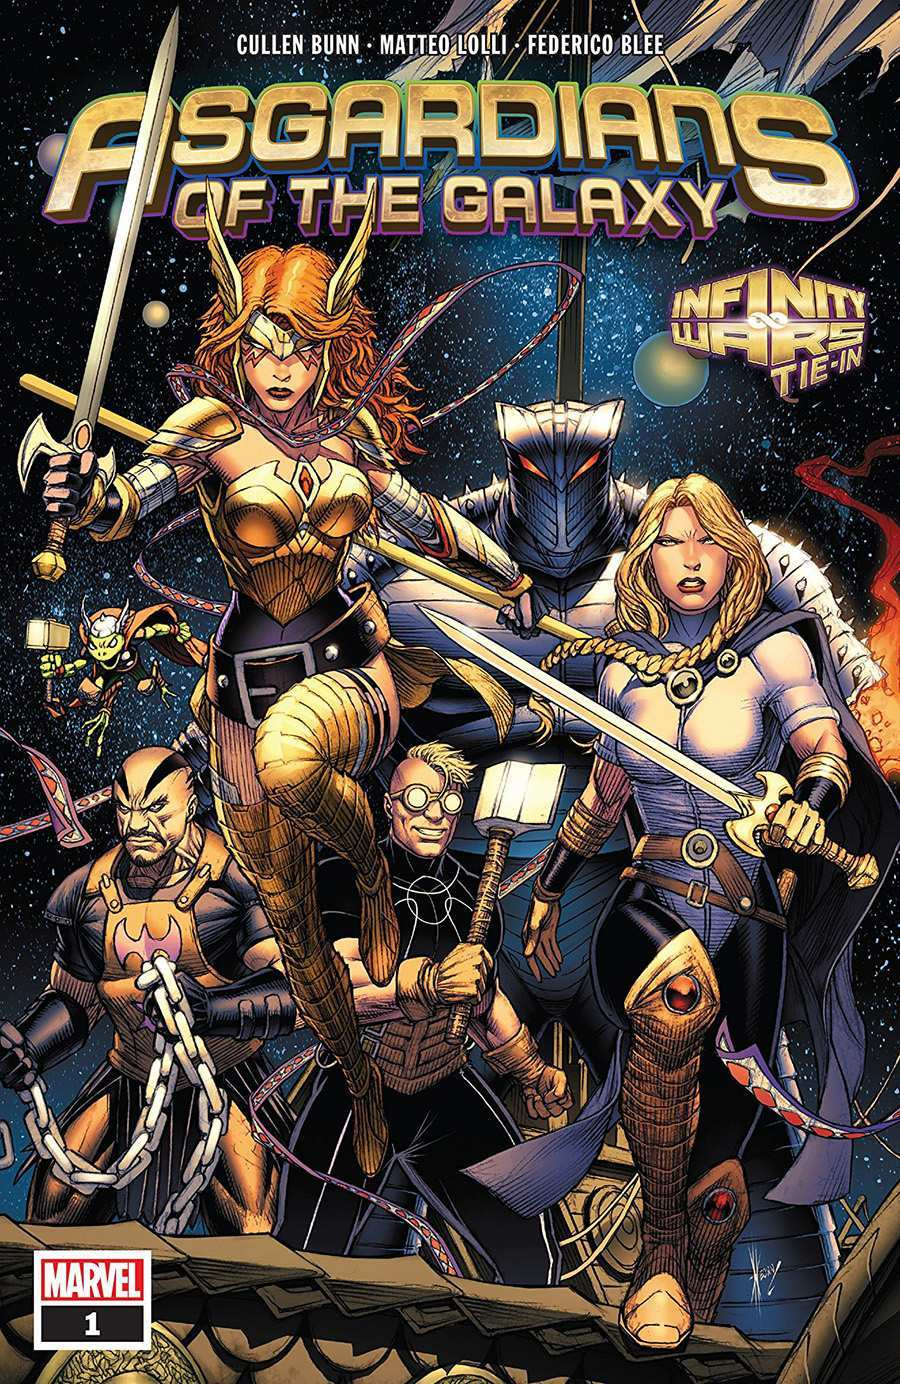 Asgardians-of-the-Galaxy-1